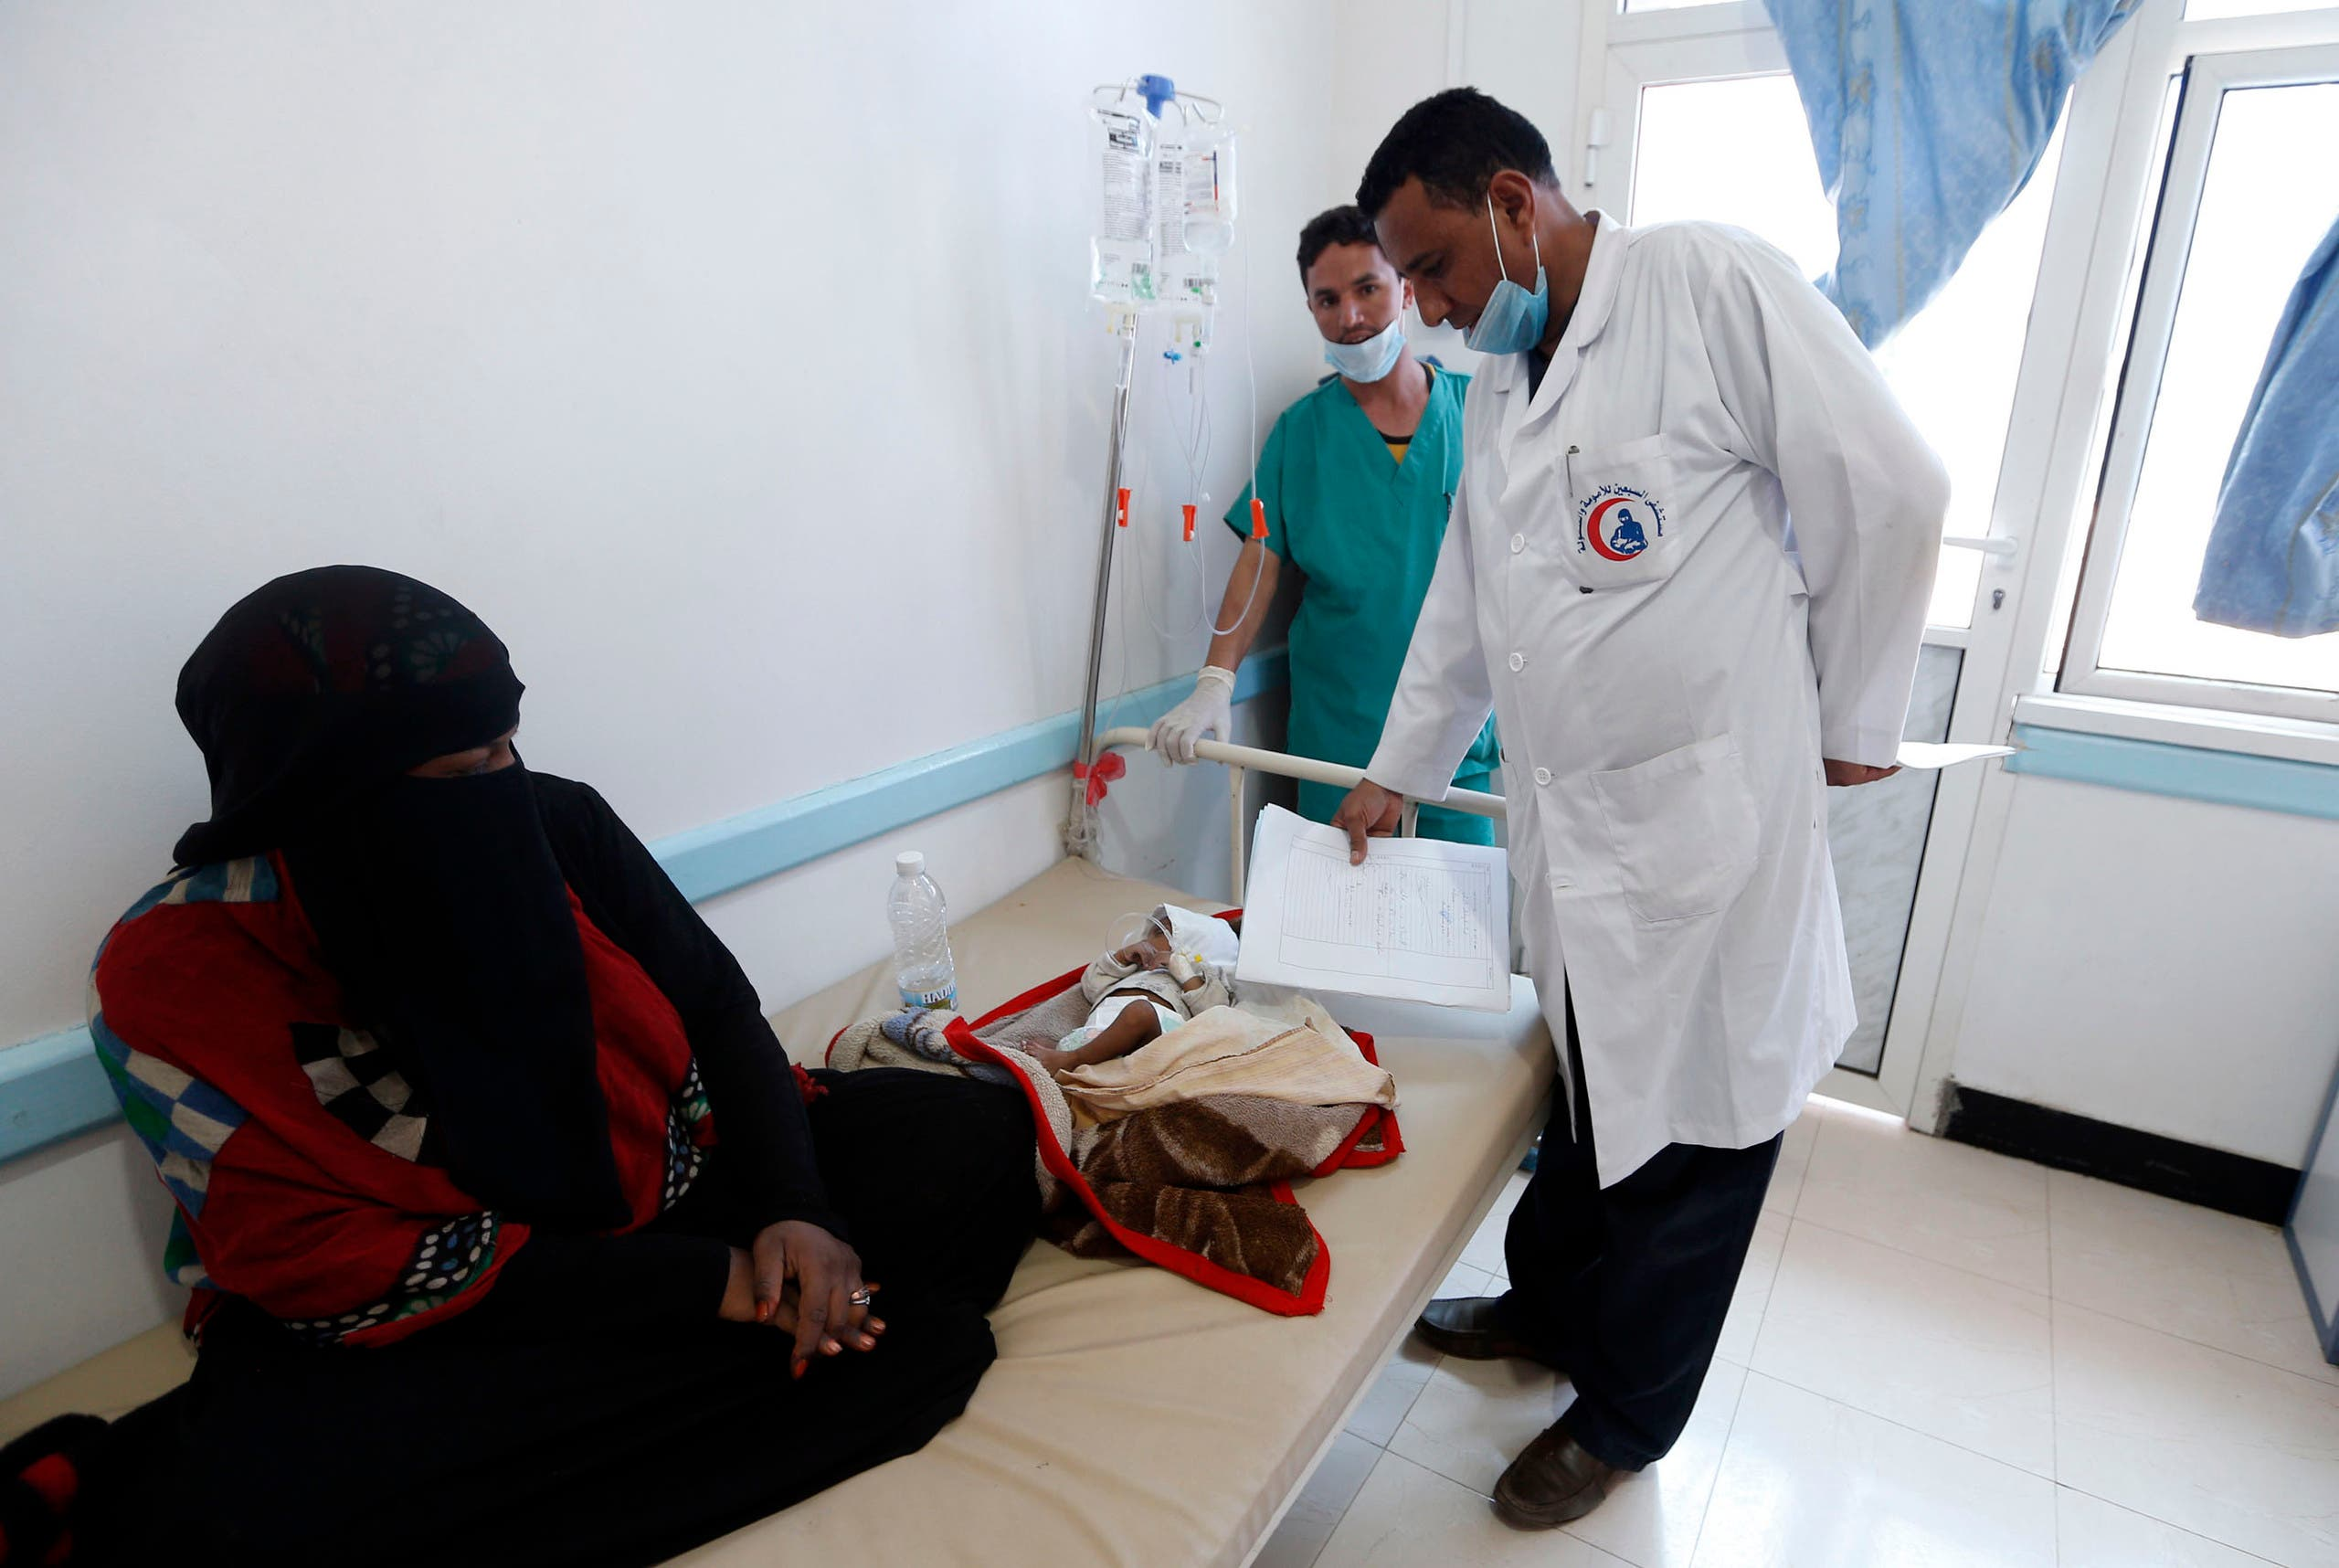 A Yemeni mother sits near her child suspected of being infected with cholera receiving treatment at a hospital in Sanaa on May 25, 2017. (AFP)